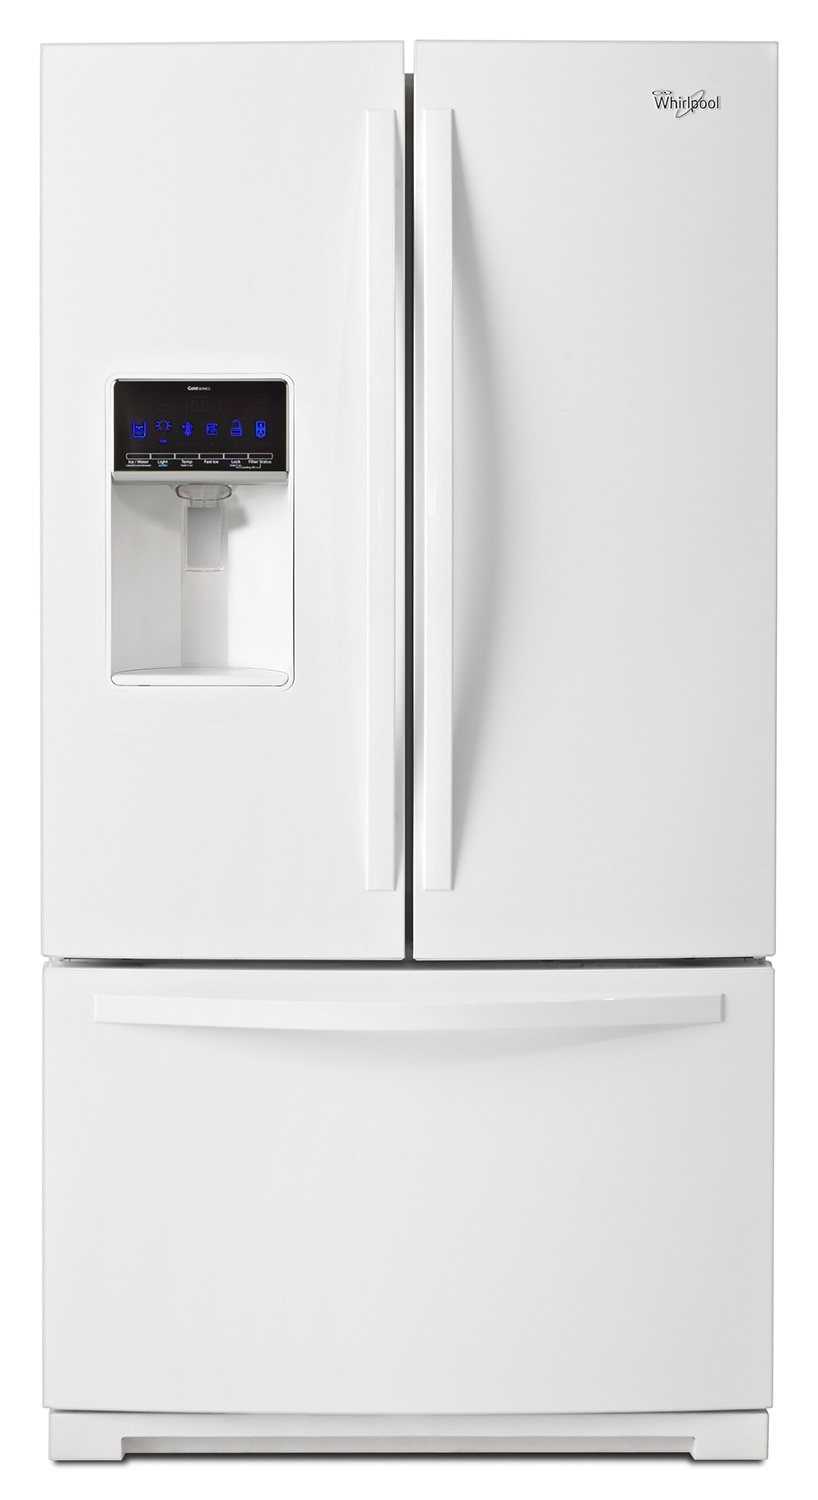 Refrigerators and Freezers - Whirlpool White French Door Refrigerator (24.7 Cu. Ft.) - WRF736SDAW